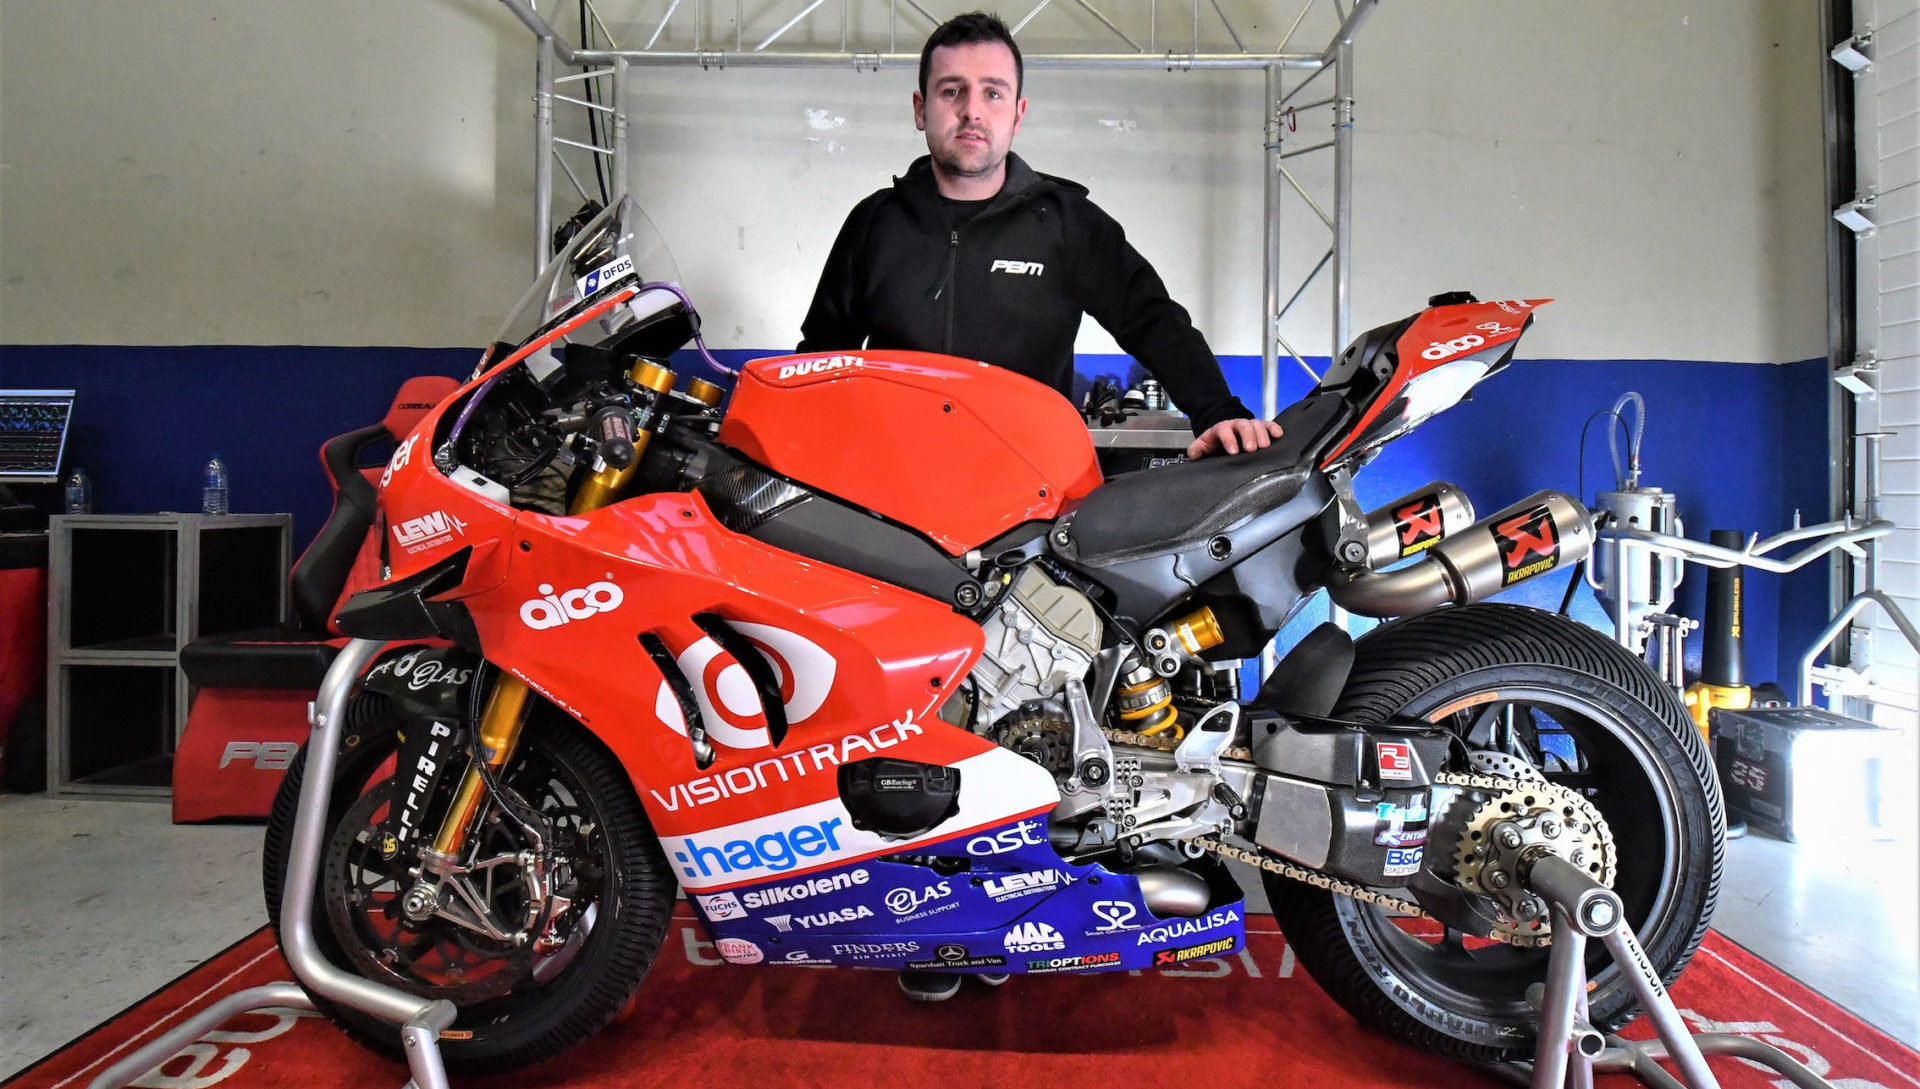 Michael Dunlop and his new VisionTrack Ducati Panigale V4 R. Photo courtesy of Paul Bird Motorsport.